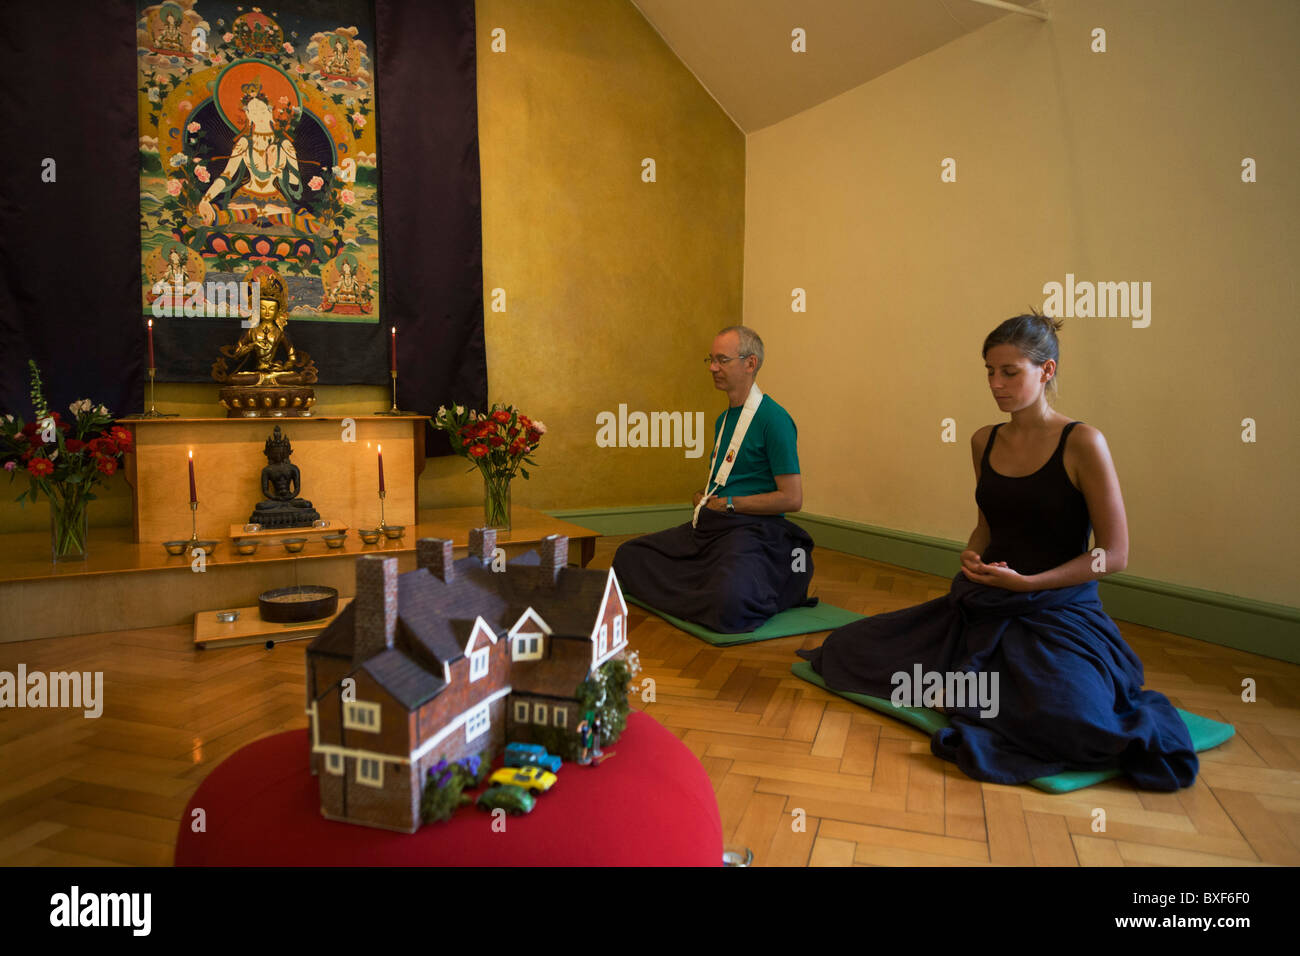 Buddhists meditate in silence for 30 minutes in their Shrine Room at the Rivendell Buddhist Retreat Centre, England. - Stock Image